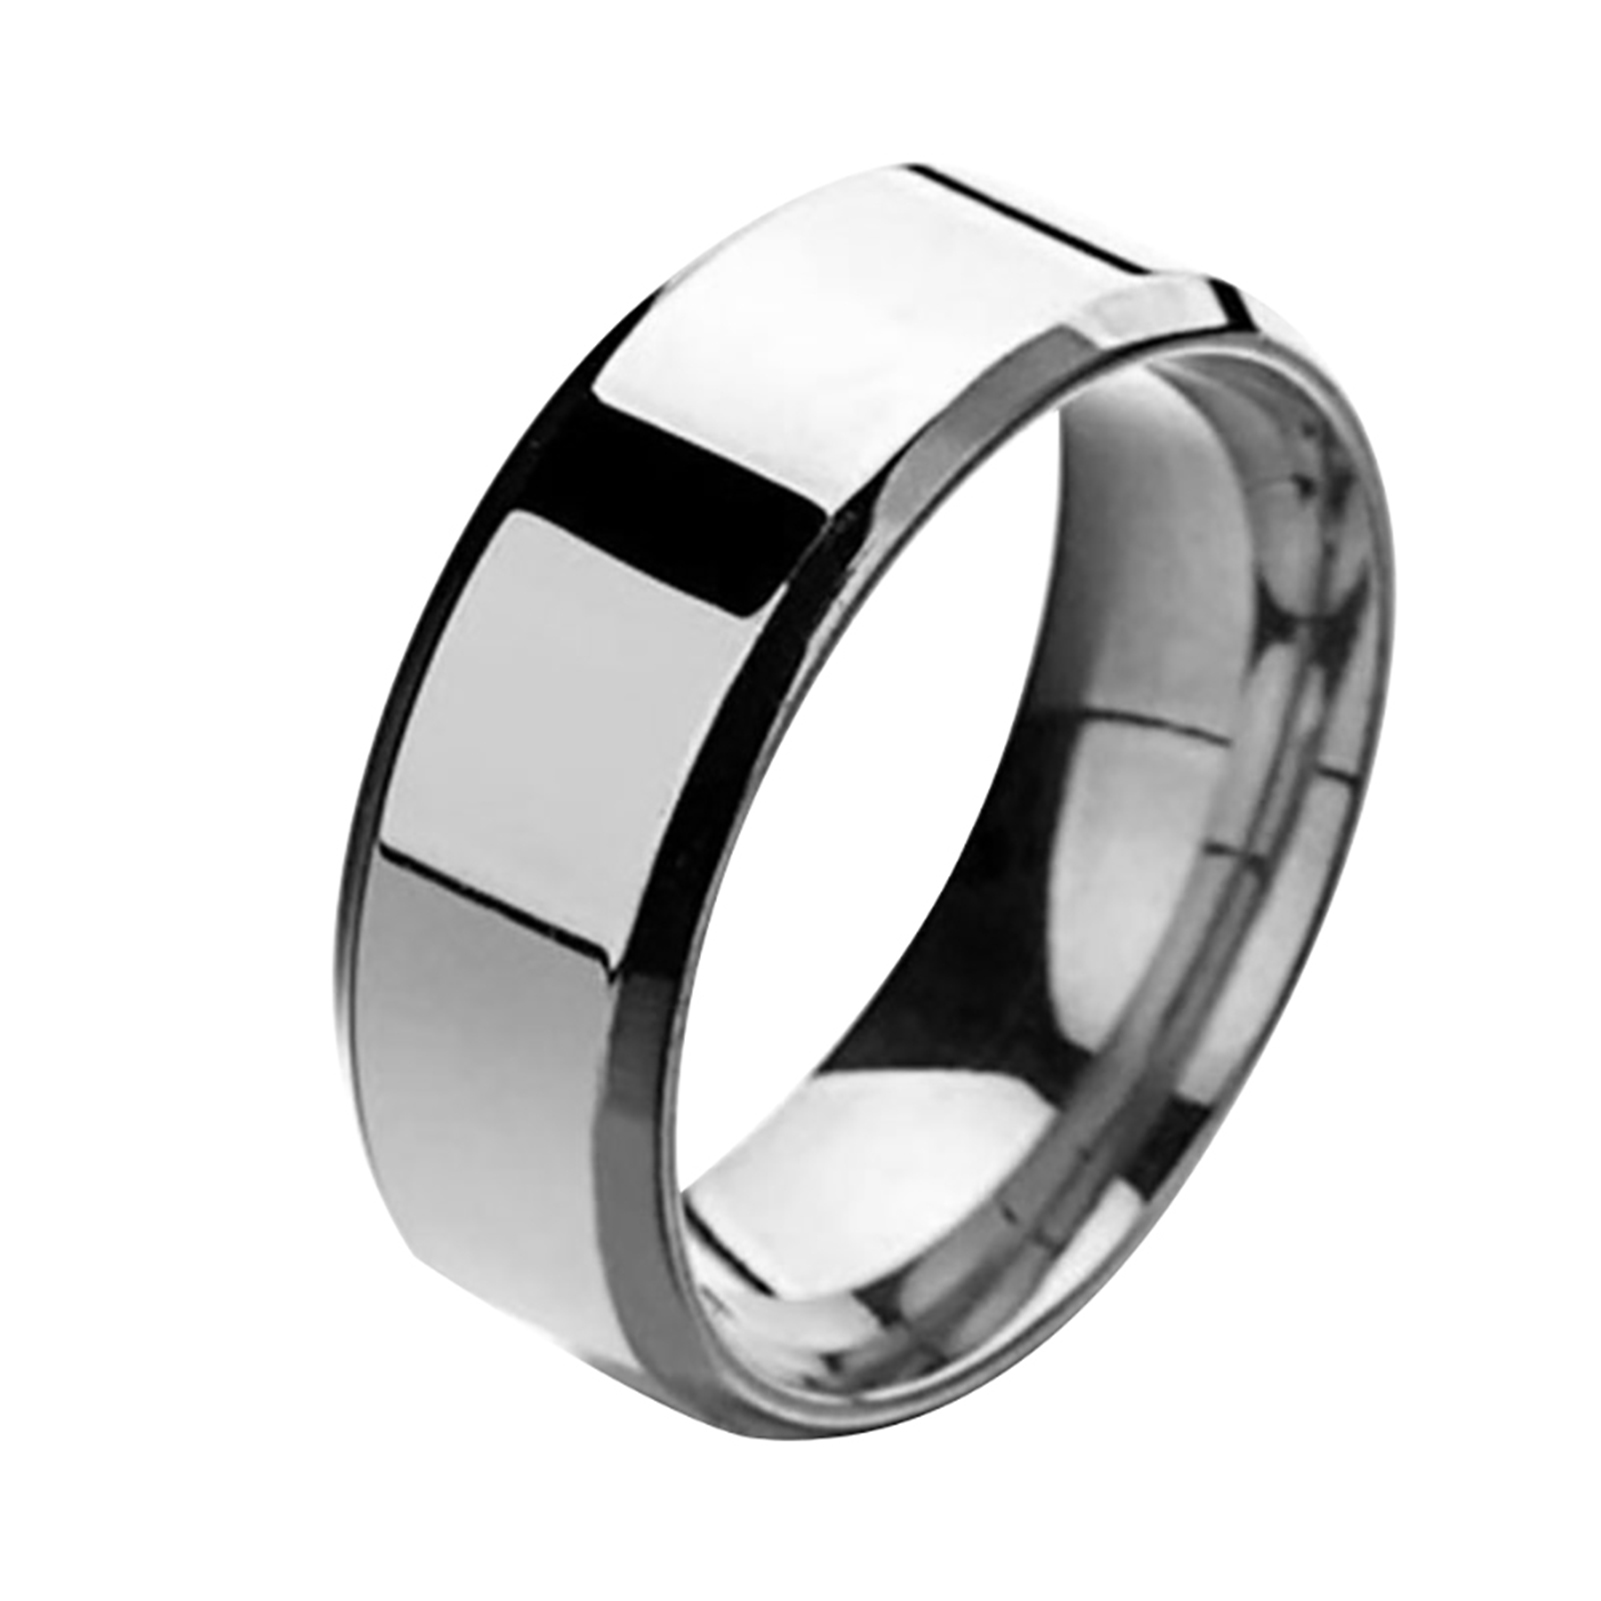 Stainless-Steel-Titanium-Ring-Men-amp-Women-Wedding-Engagement-Band-Cool-Size-6-13 thumbnail 18